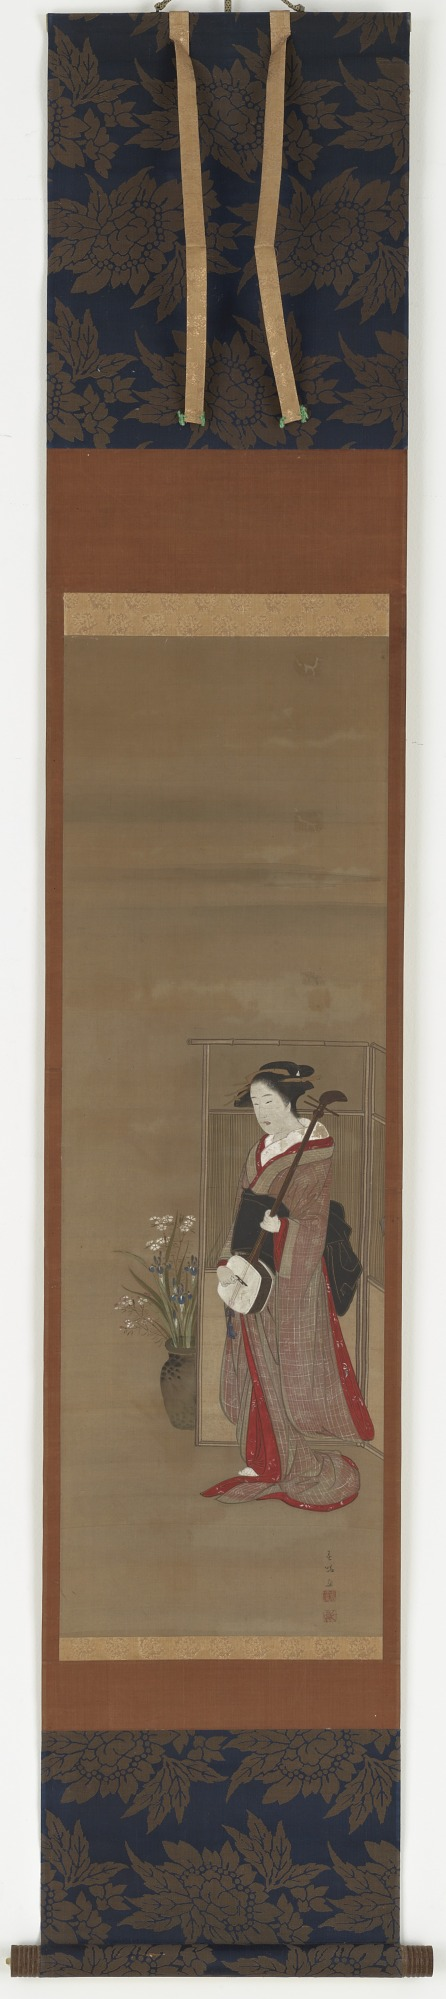 Girl with a samisen standing beside a screen